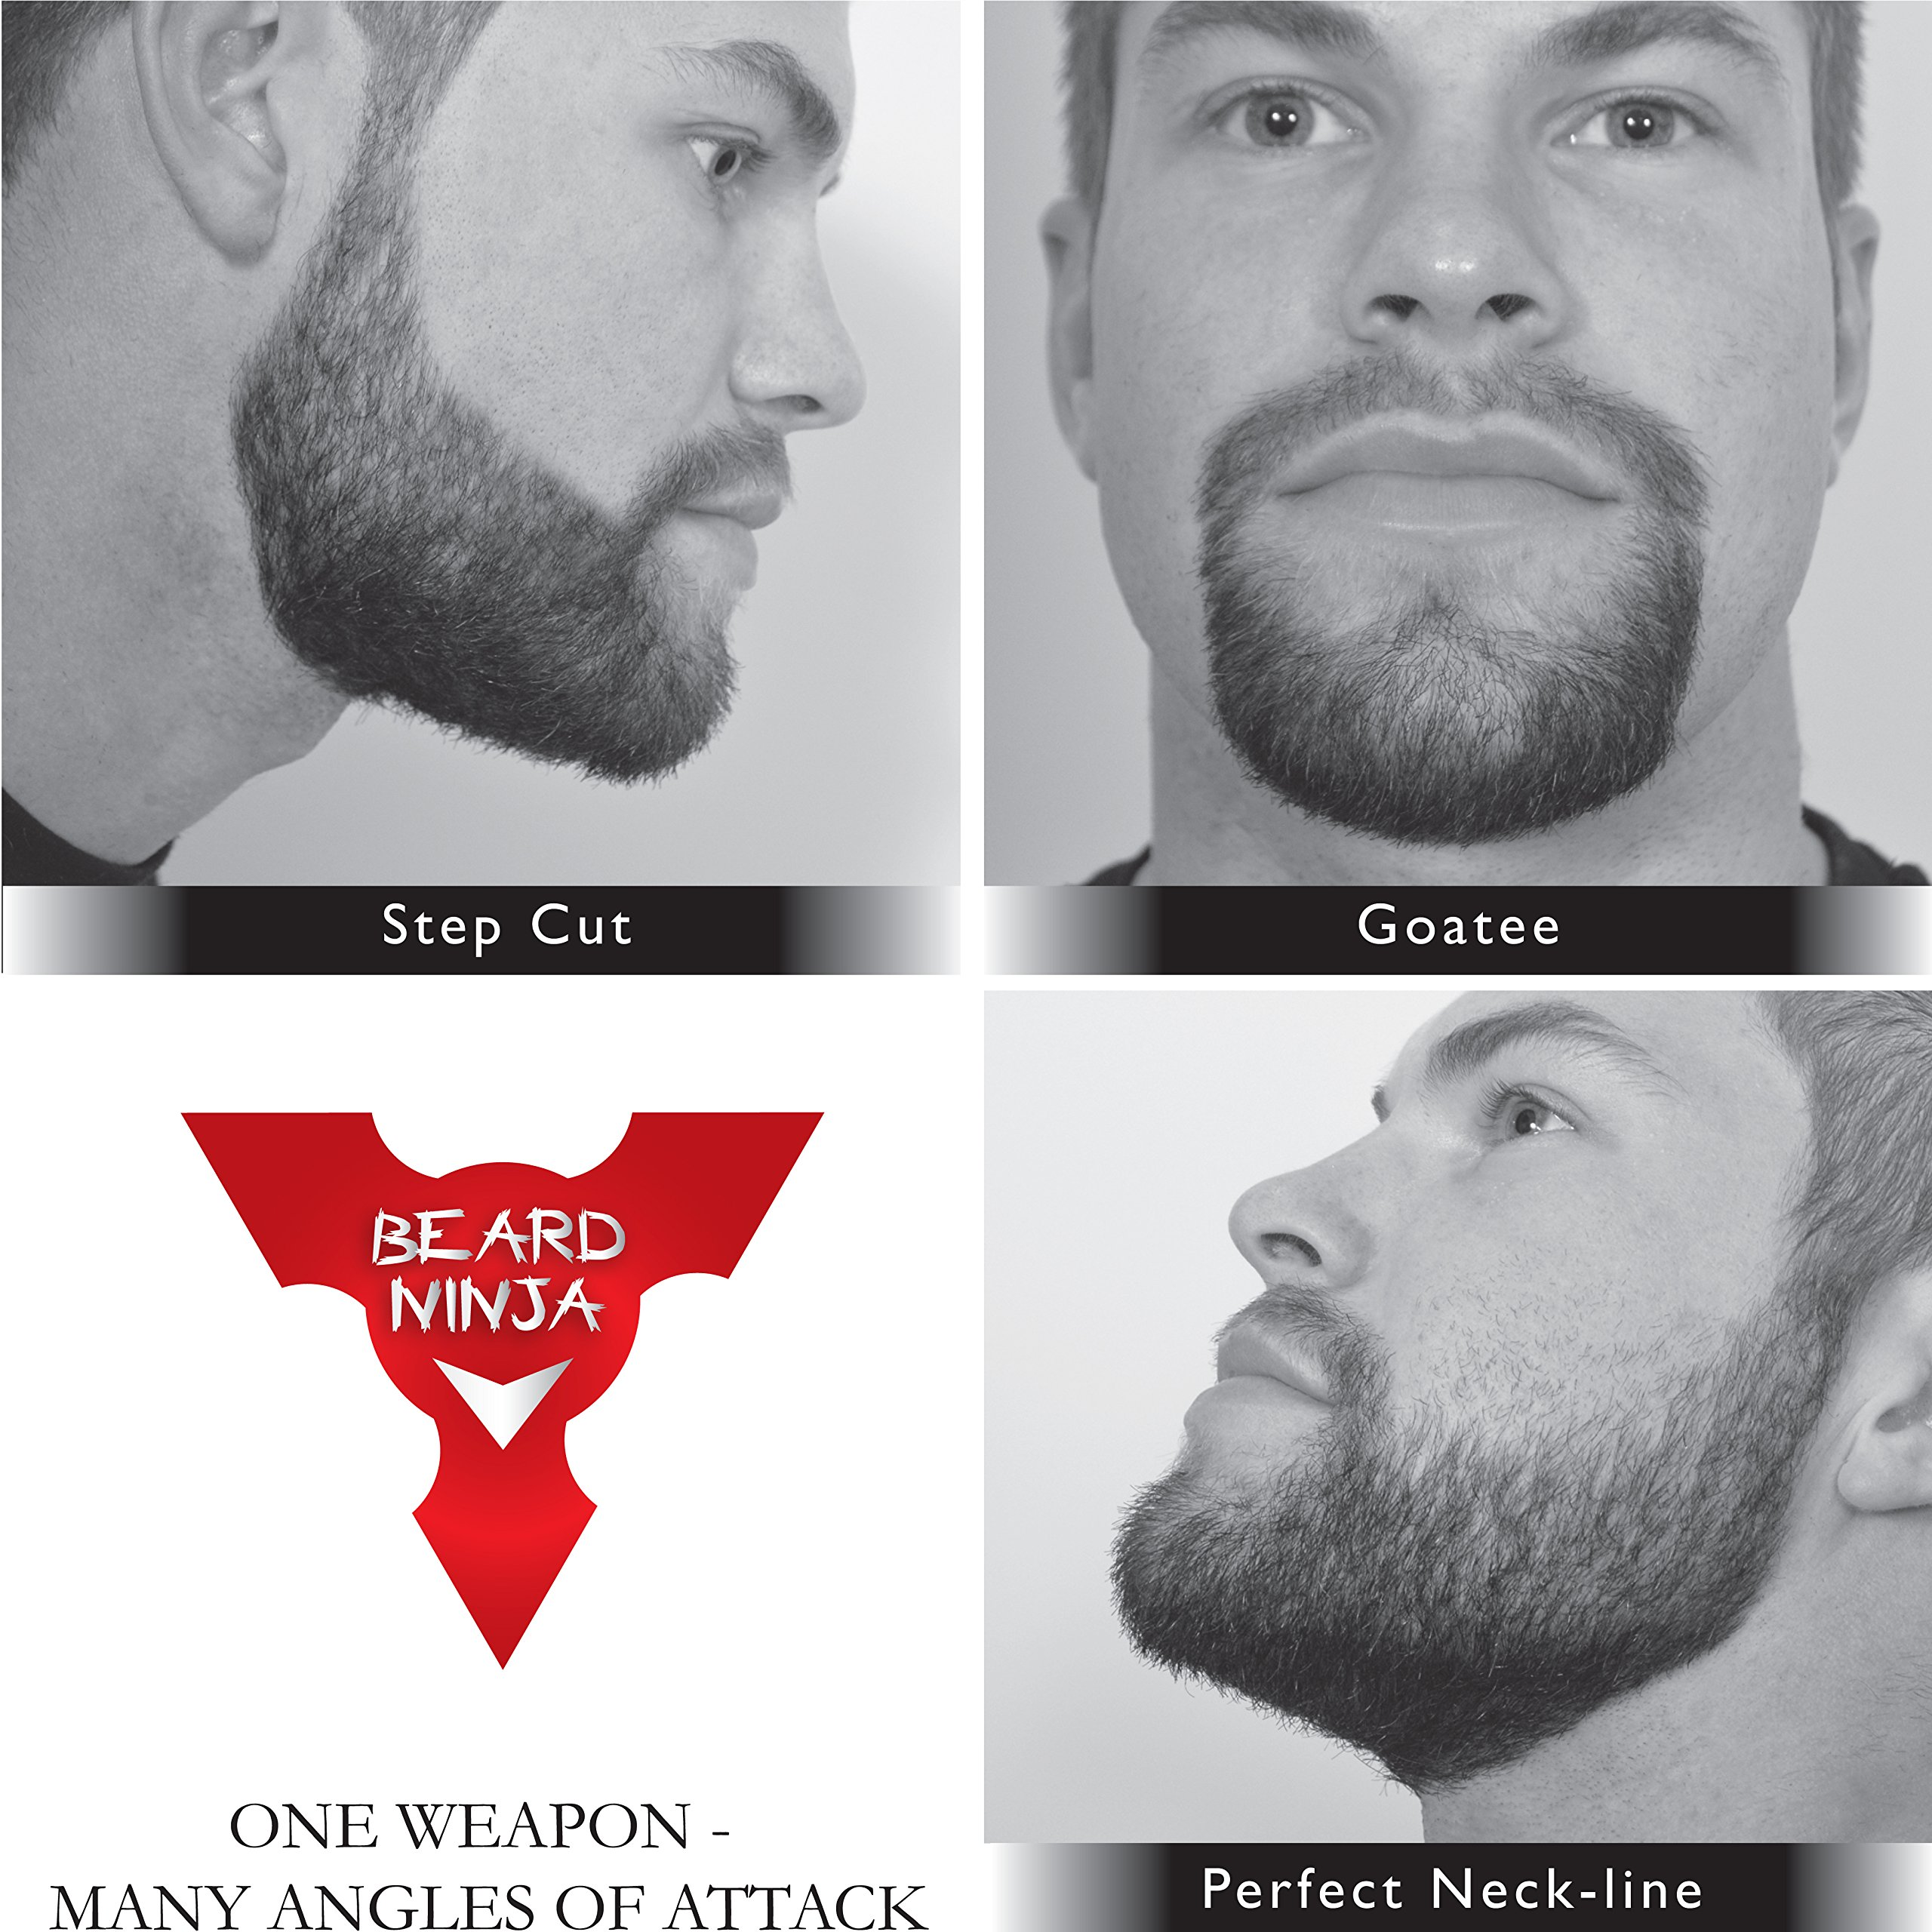 The BEARD NINJA - Beard Shaping Tool Template. Beard shaper guide for line up & edging. TRANSPARENT styling stencil +ANTI-SLIP GRIP. Curve/Step/Straight Cut, Goatee & Perfect Neck Line